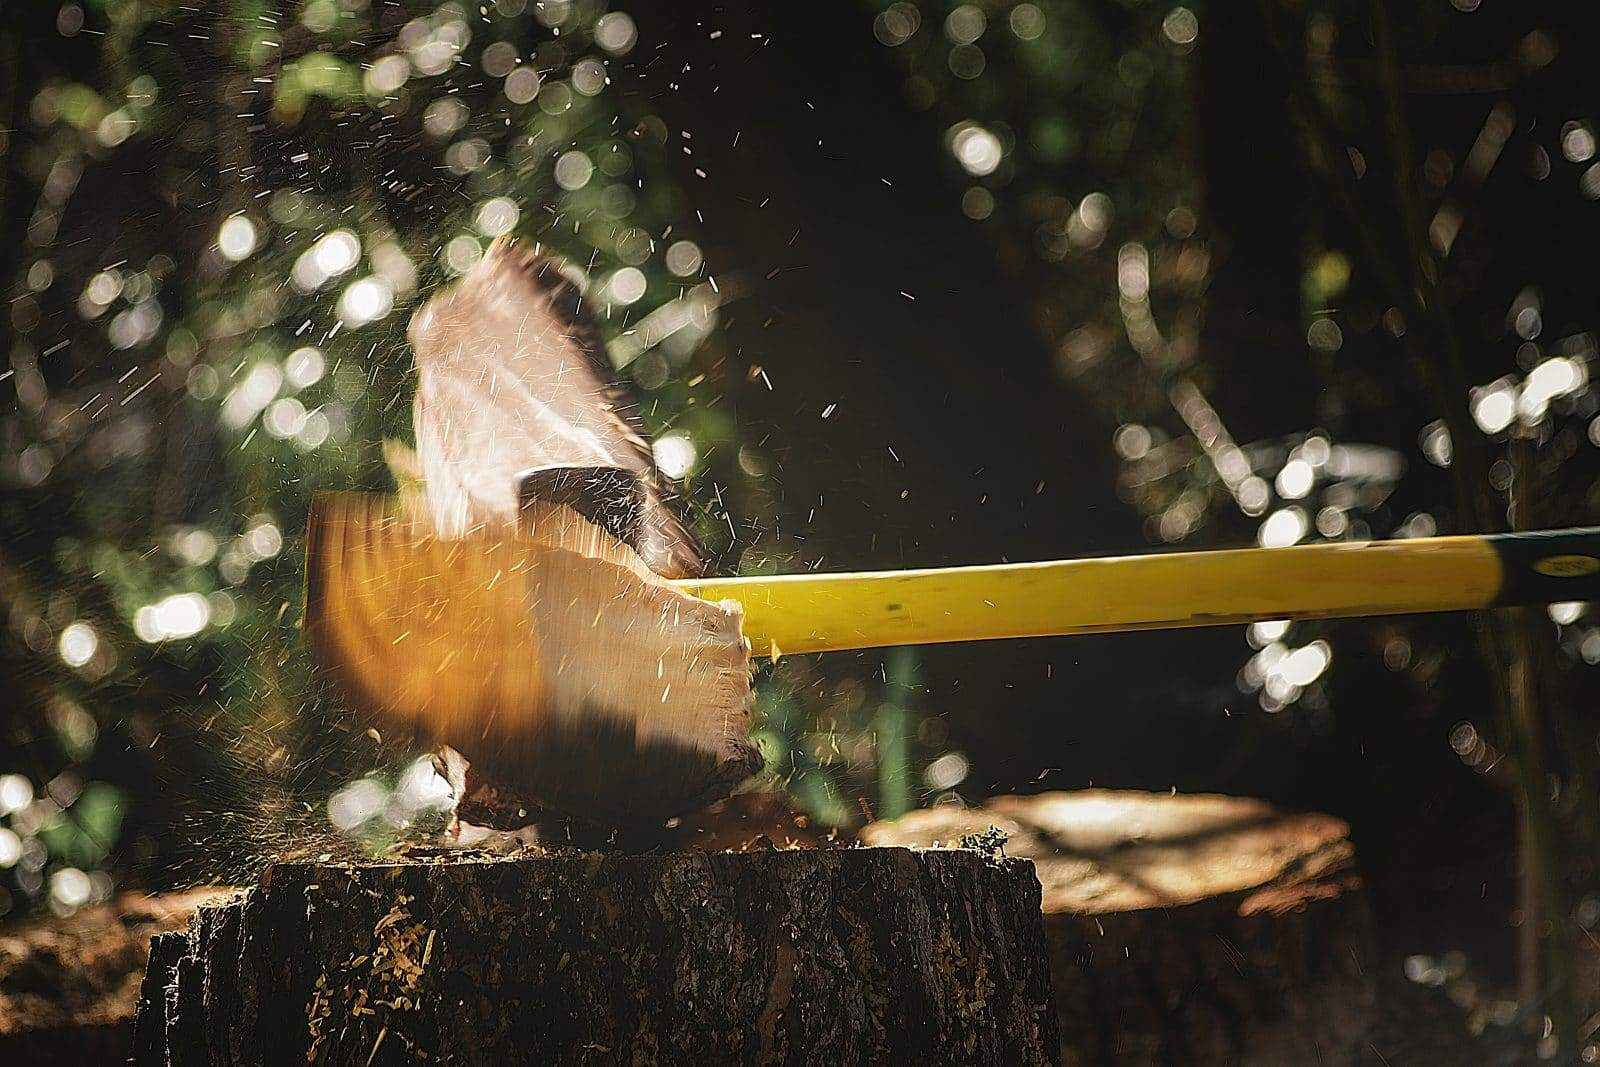 axe splitting wood